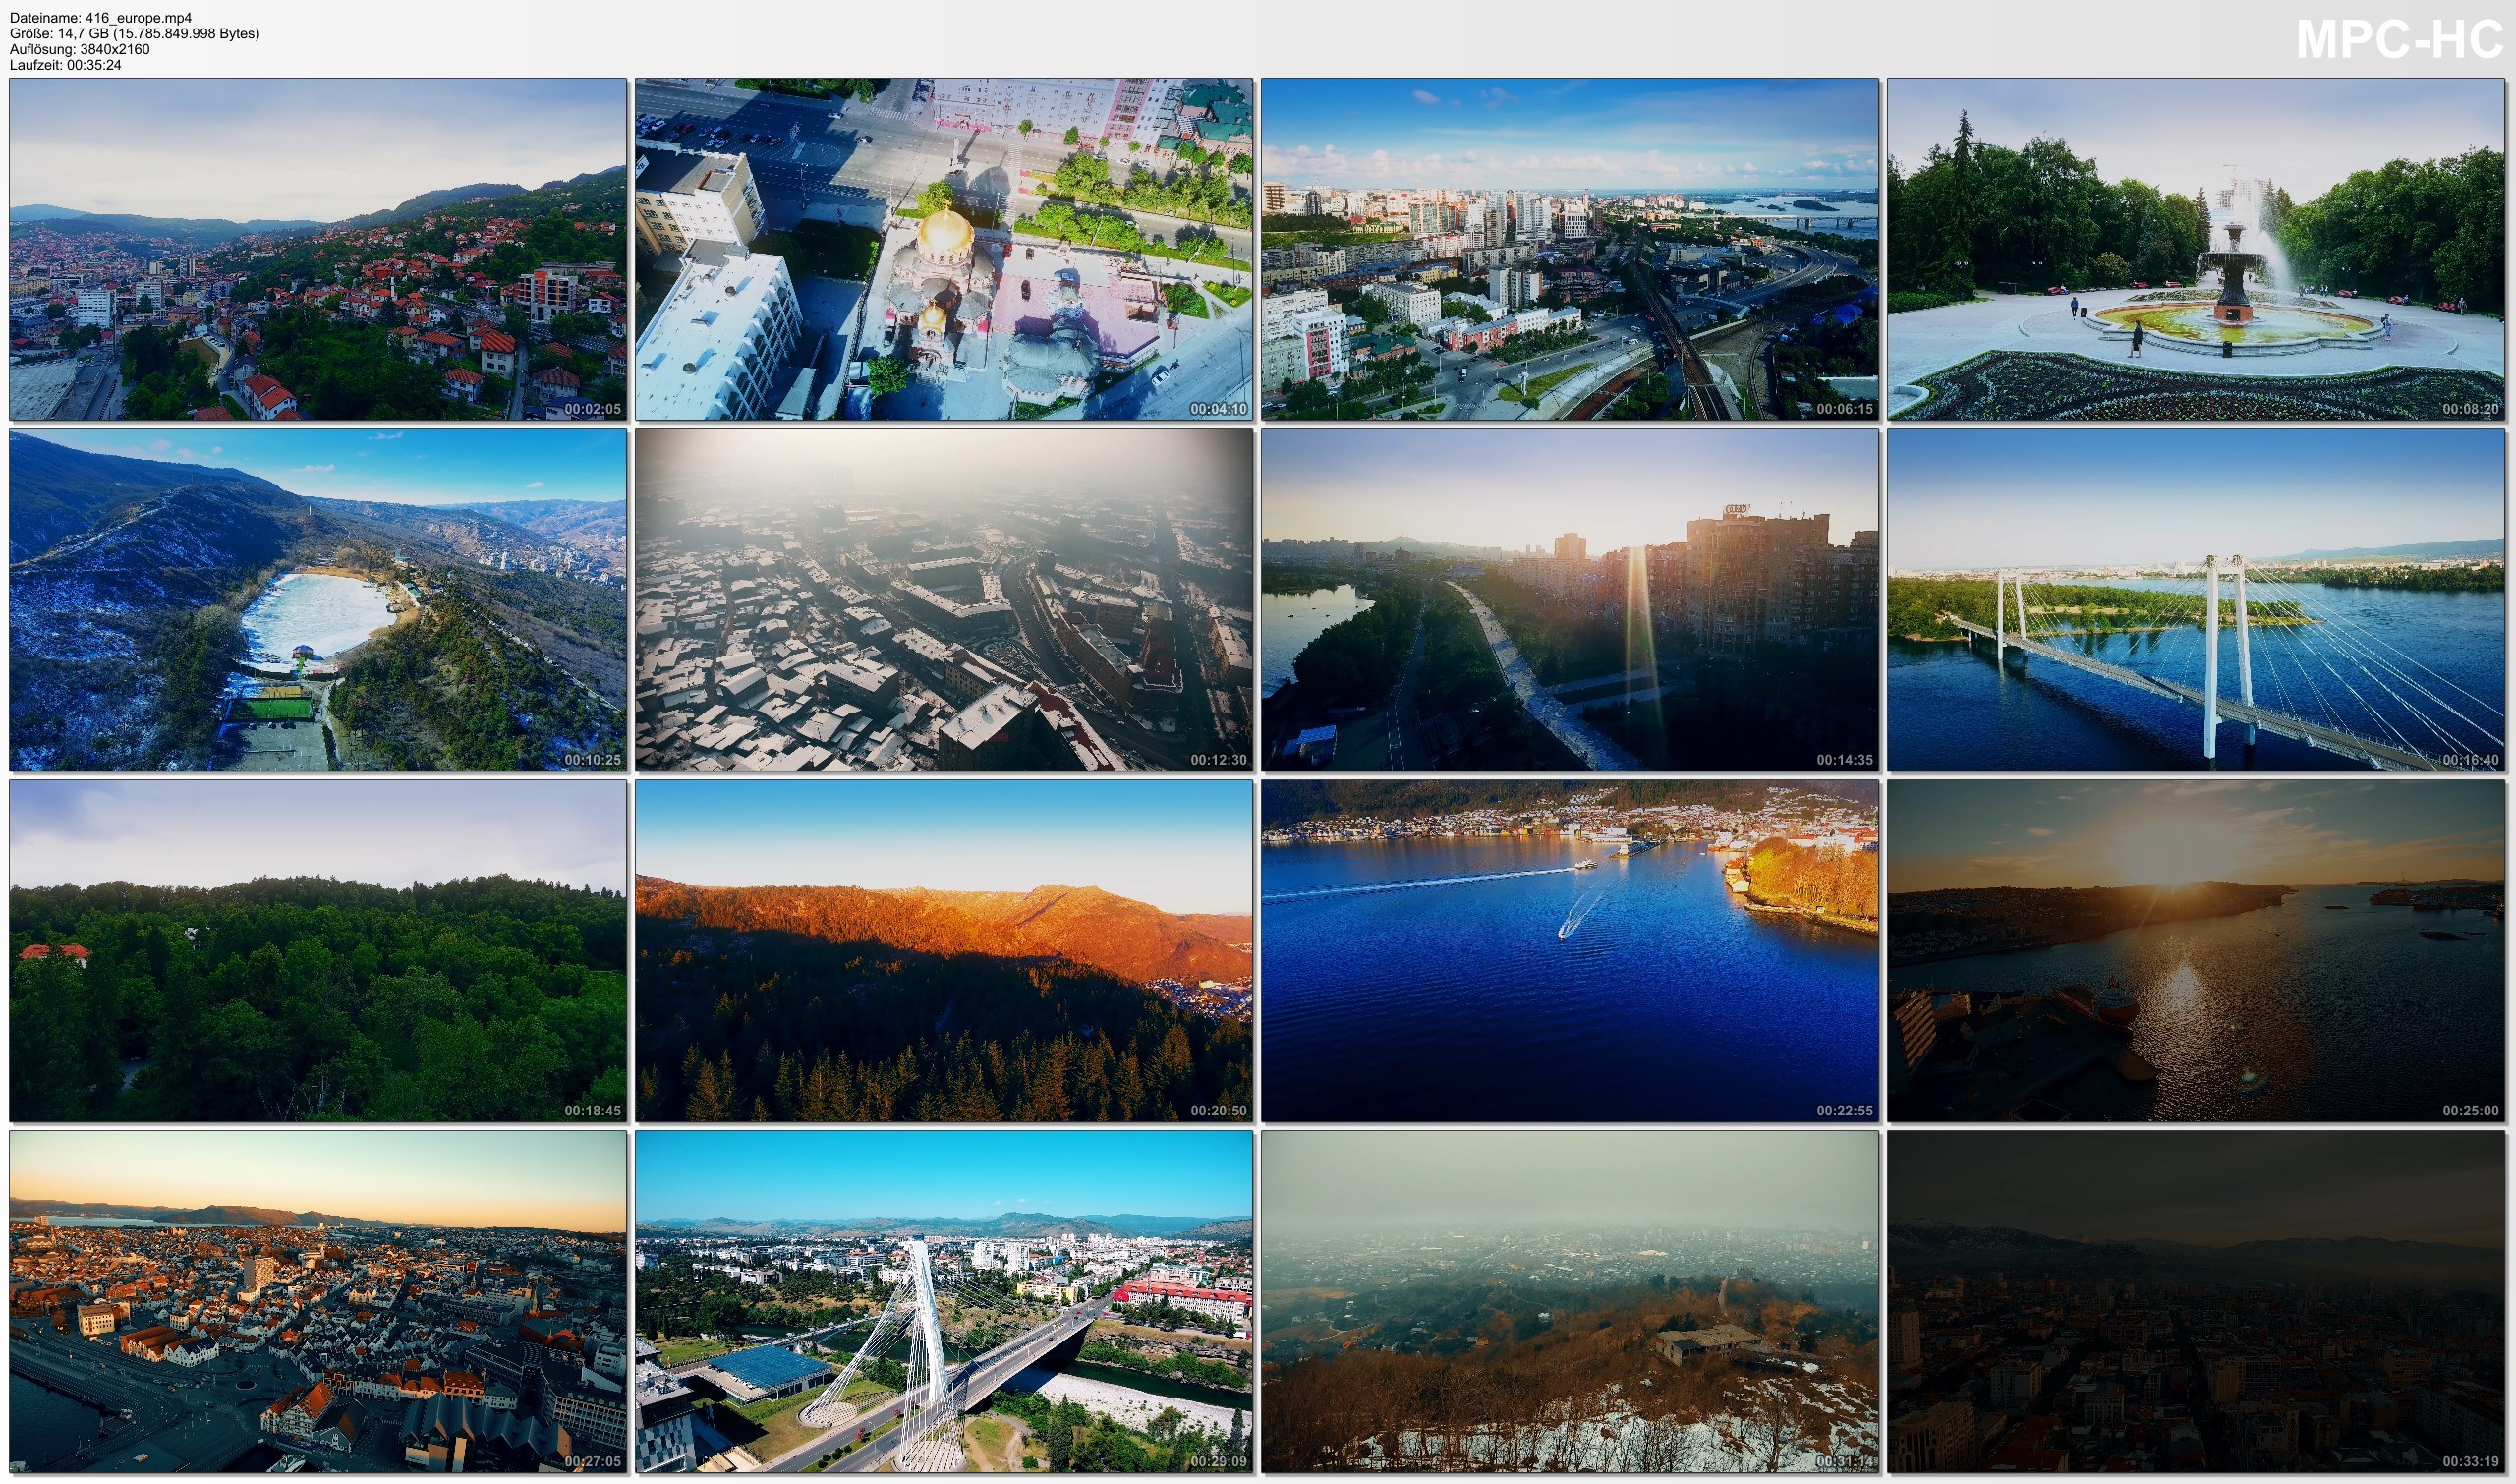 Drone Pictures from Video 【4K】Drone Footage | 11 MEGACITIES of Europe 2019 ..:: Cinematic Aerial Film